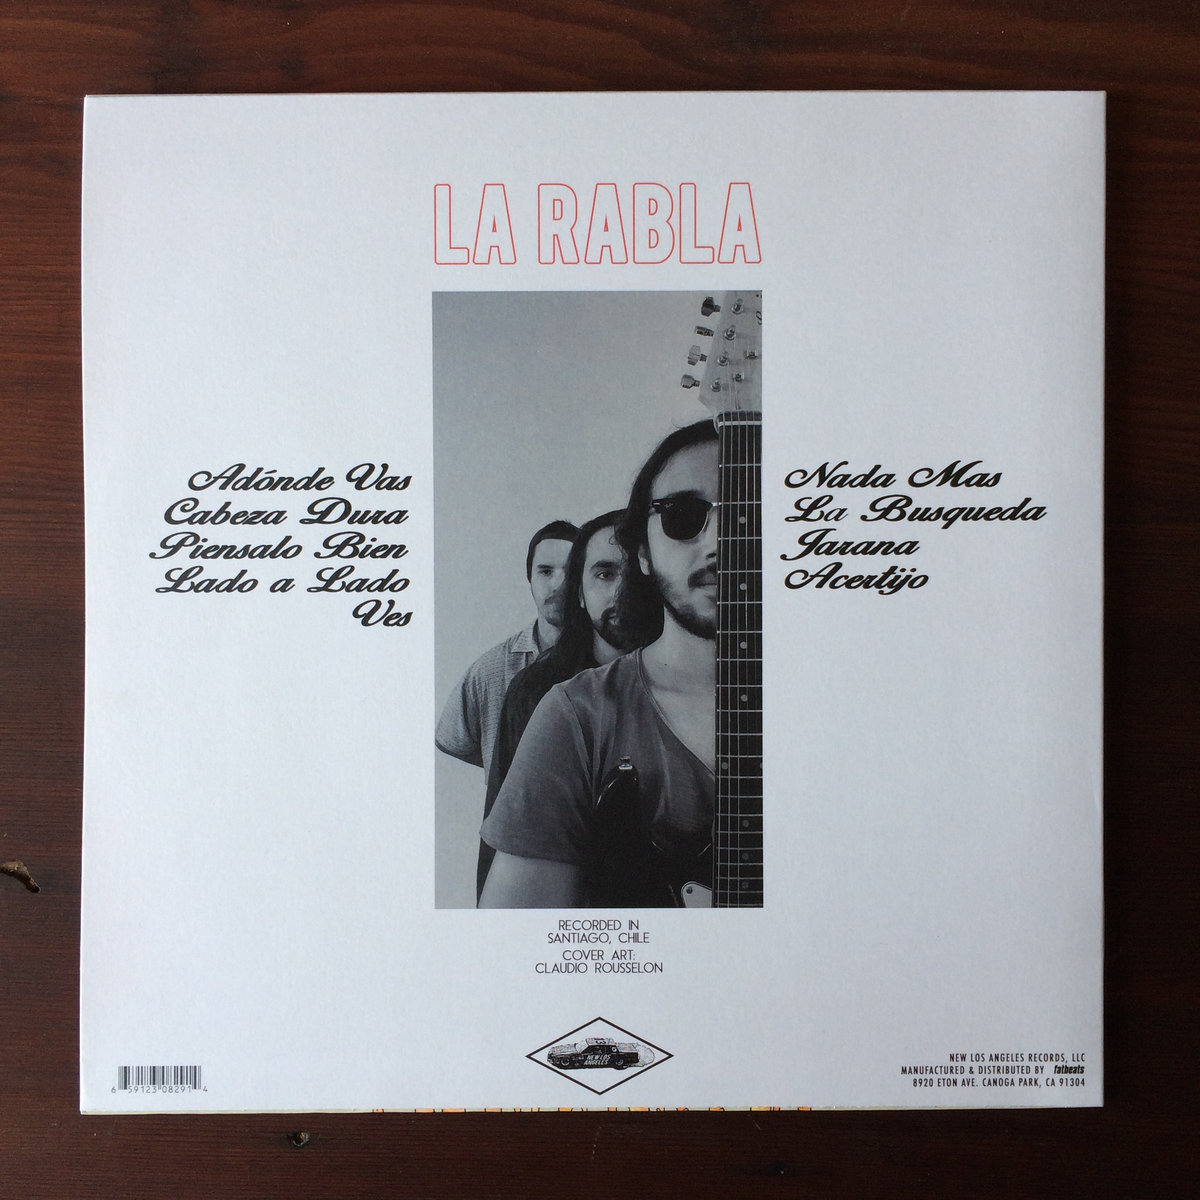 La rabla new los angeles la rablas self titled debut album on limited edition virgin vinyl with cover illustration by claudio rousselon of mexico printed on heavyweight malvernweather Image collections